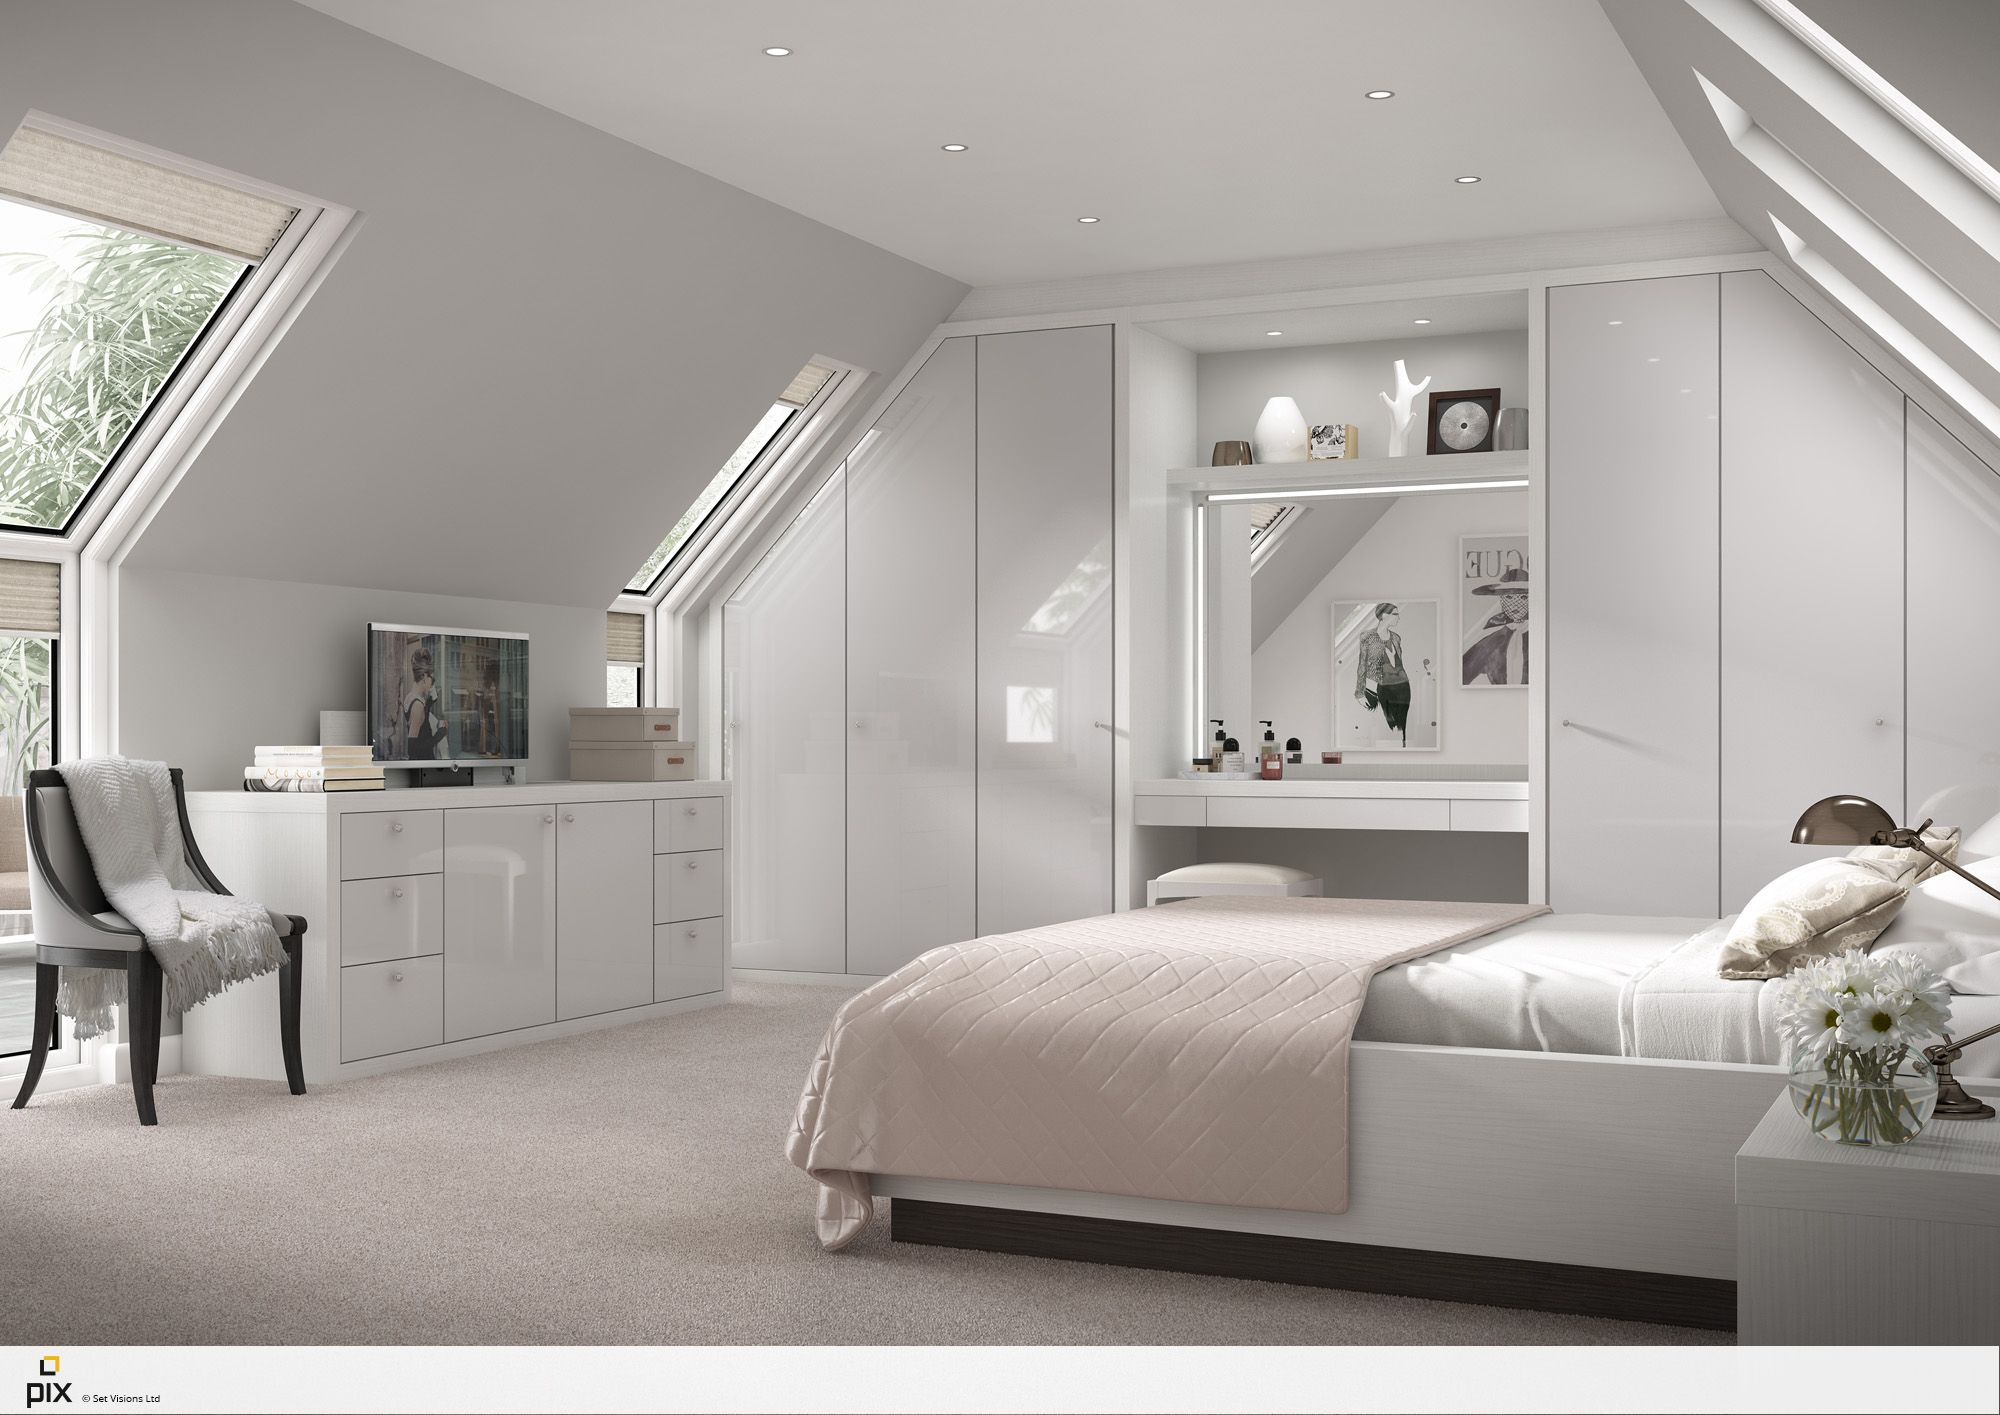 Sophisticated feminine bedroom set within a apex attic space with ...